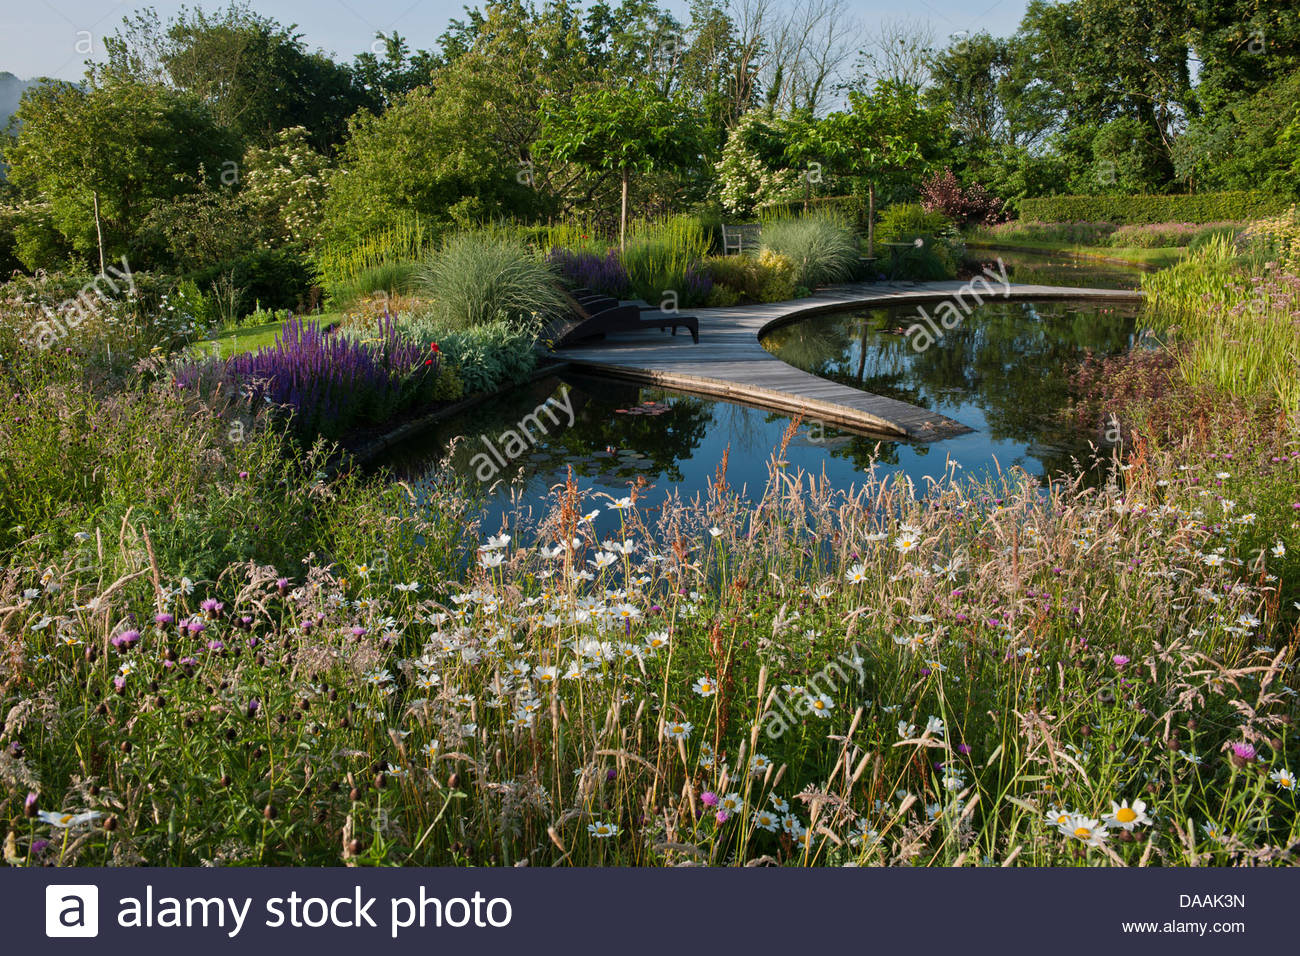 Pond informal contemporary garden designer design julie for Ornamental fish pond design